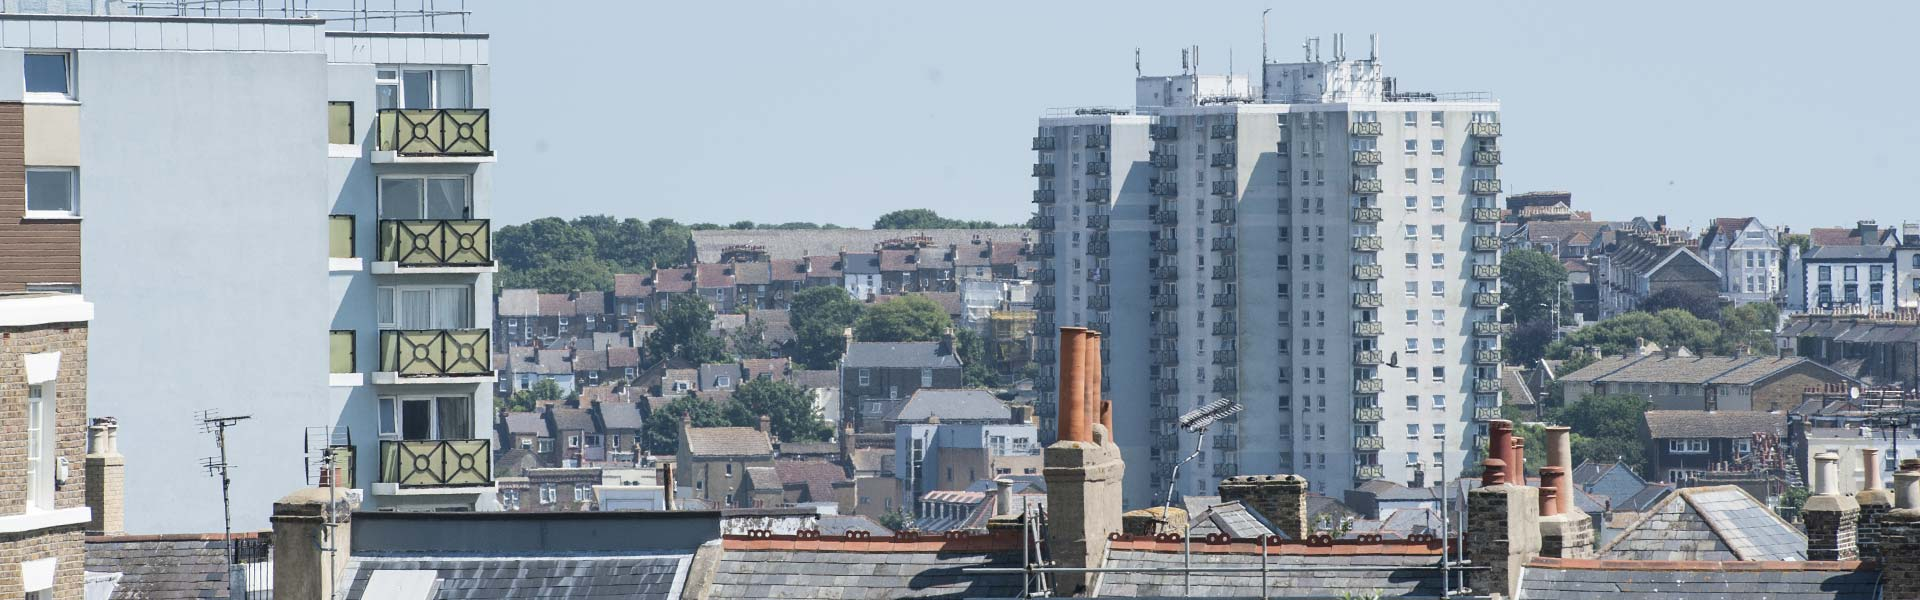 Ramsgate tower blocks will be checked for fire safety